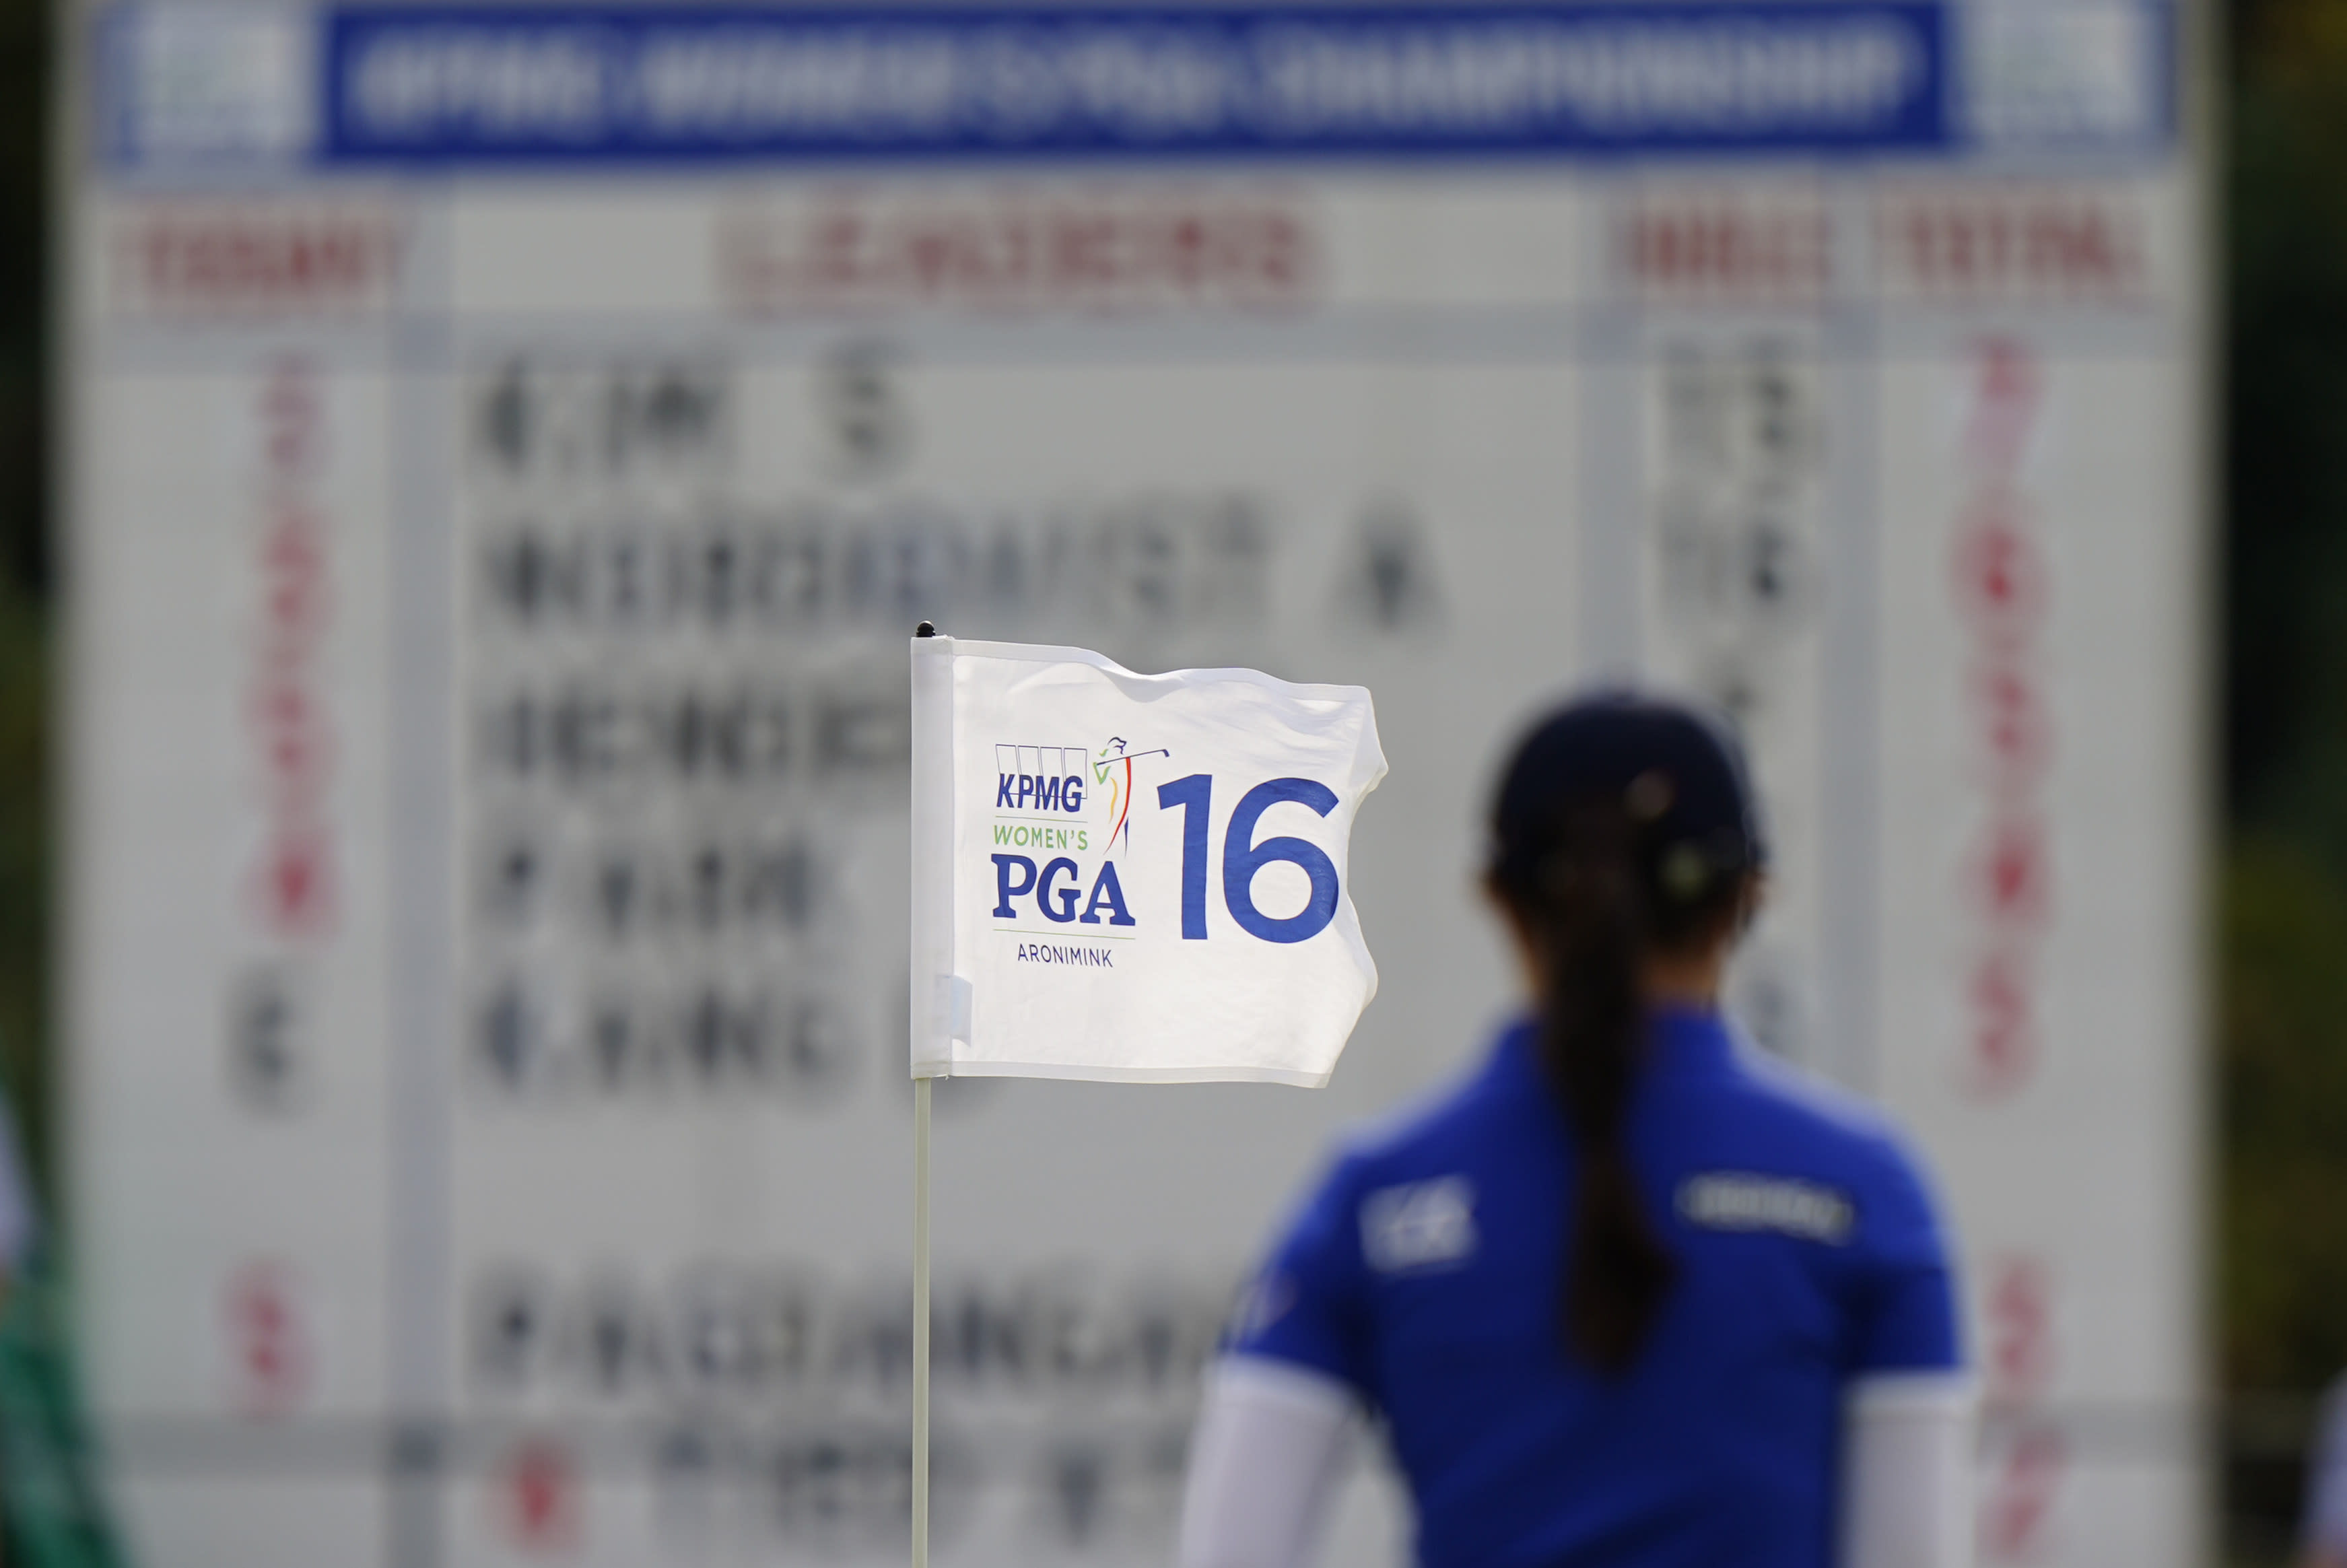 Sei Young Kim, of South Korea, walks off the 16th green during the third round at the KPMG Women's PGA Championship golf tournament at the Aronimink Golf Club, Saturday, Oct. 10, 2020, in Newtown Square, Pa. (AP Photo/Matt Slocum)